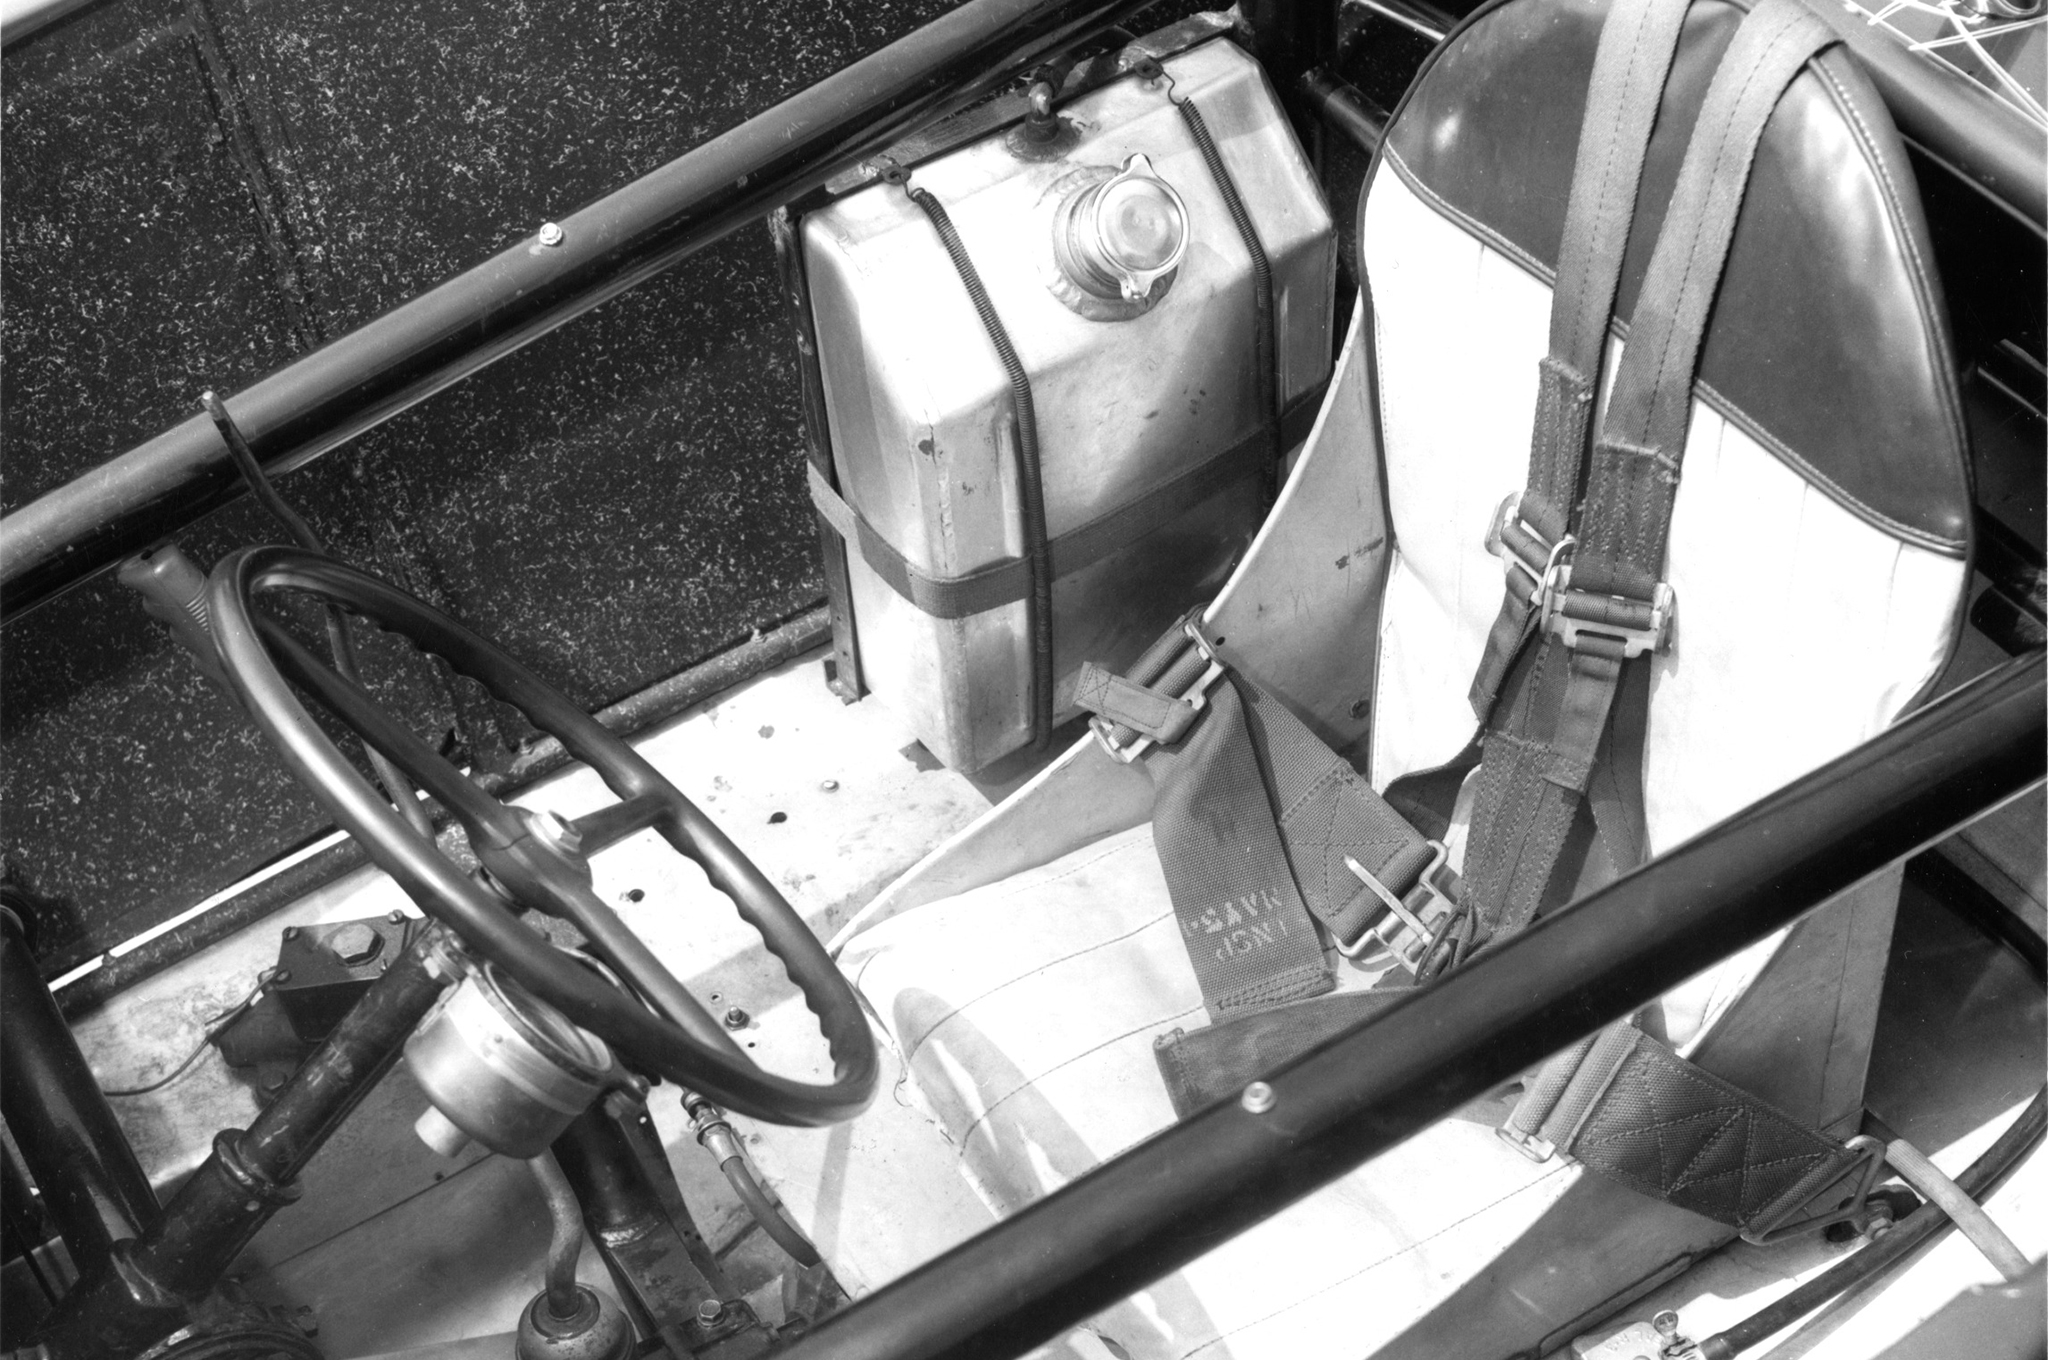 The roadster's cockpit is all business: Franklin center steering, alloy seat, side tubes and rollbar, and a petite fuel tank made from a surplus aircraft fuse box.